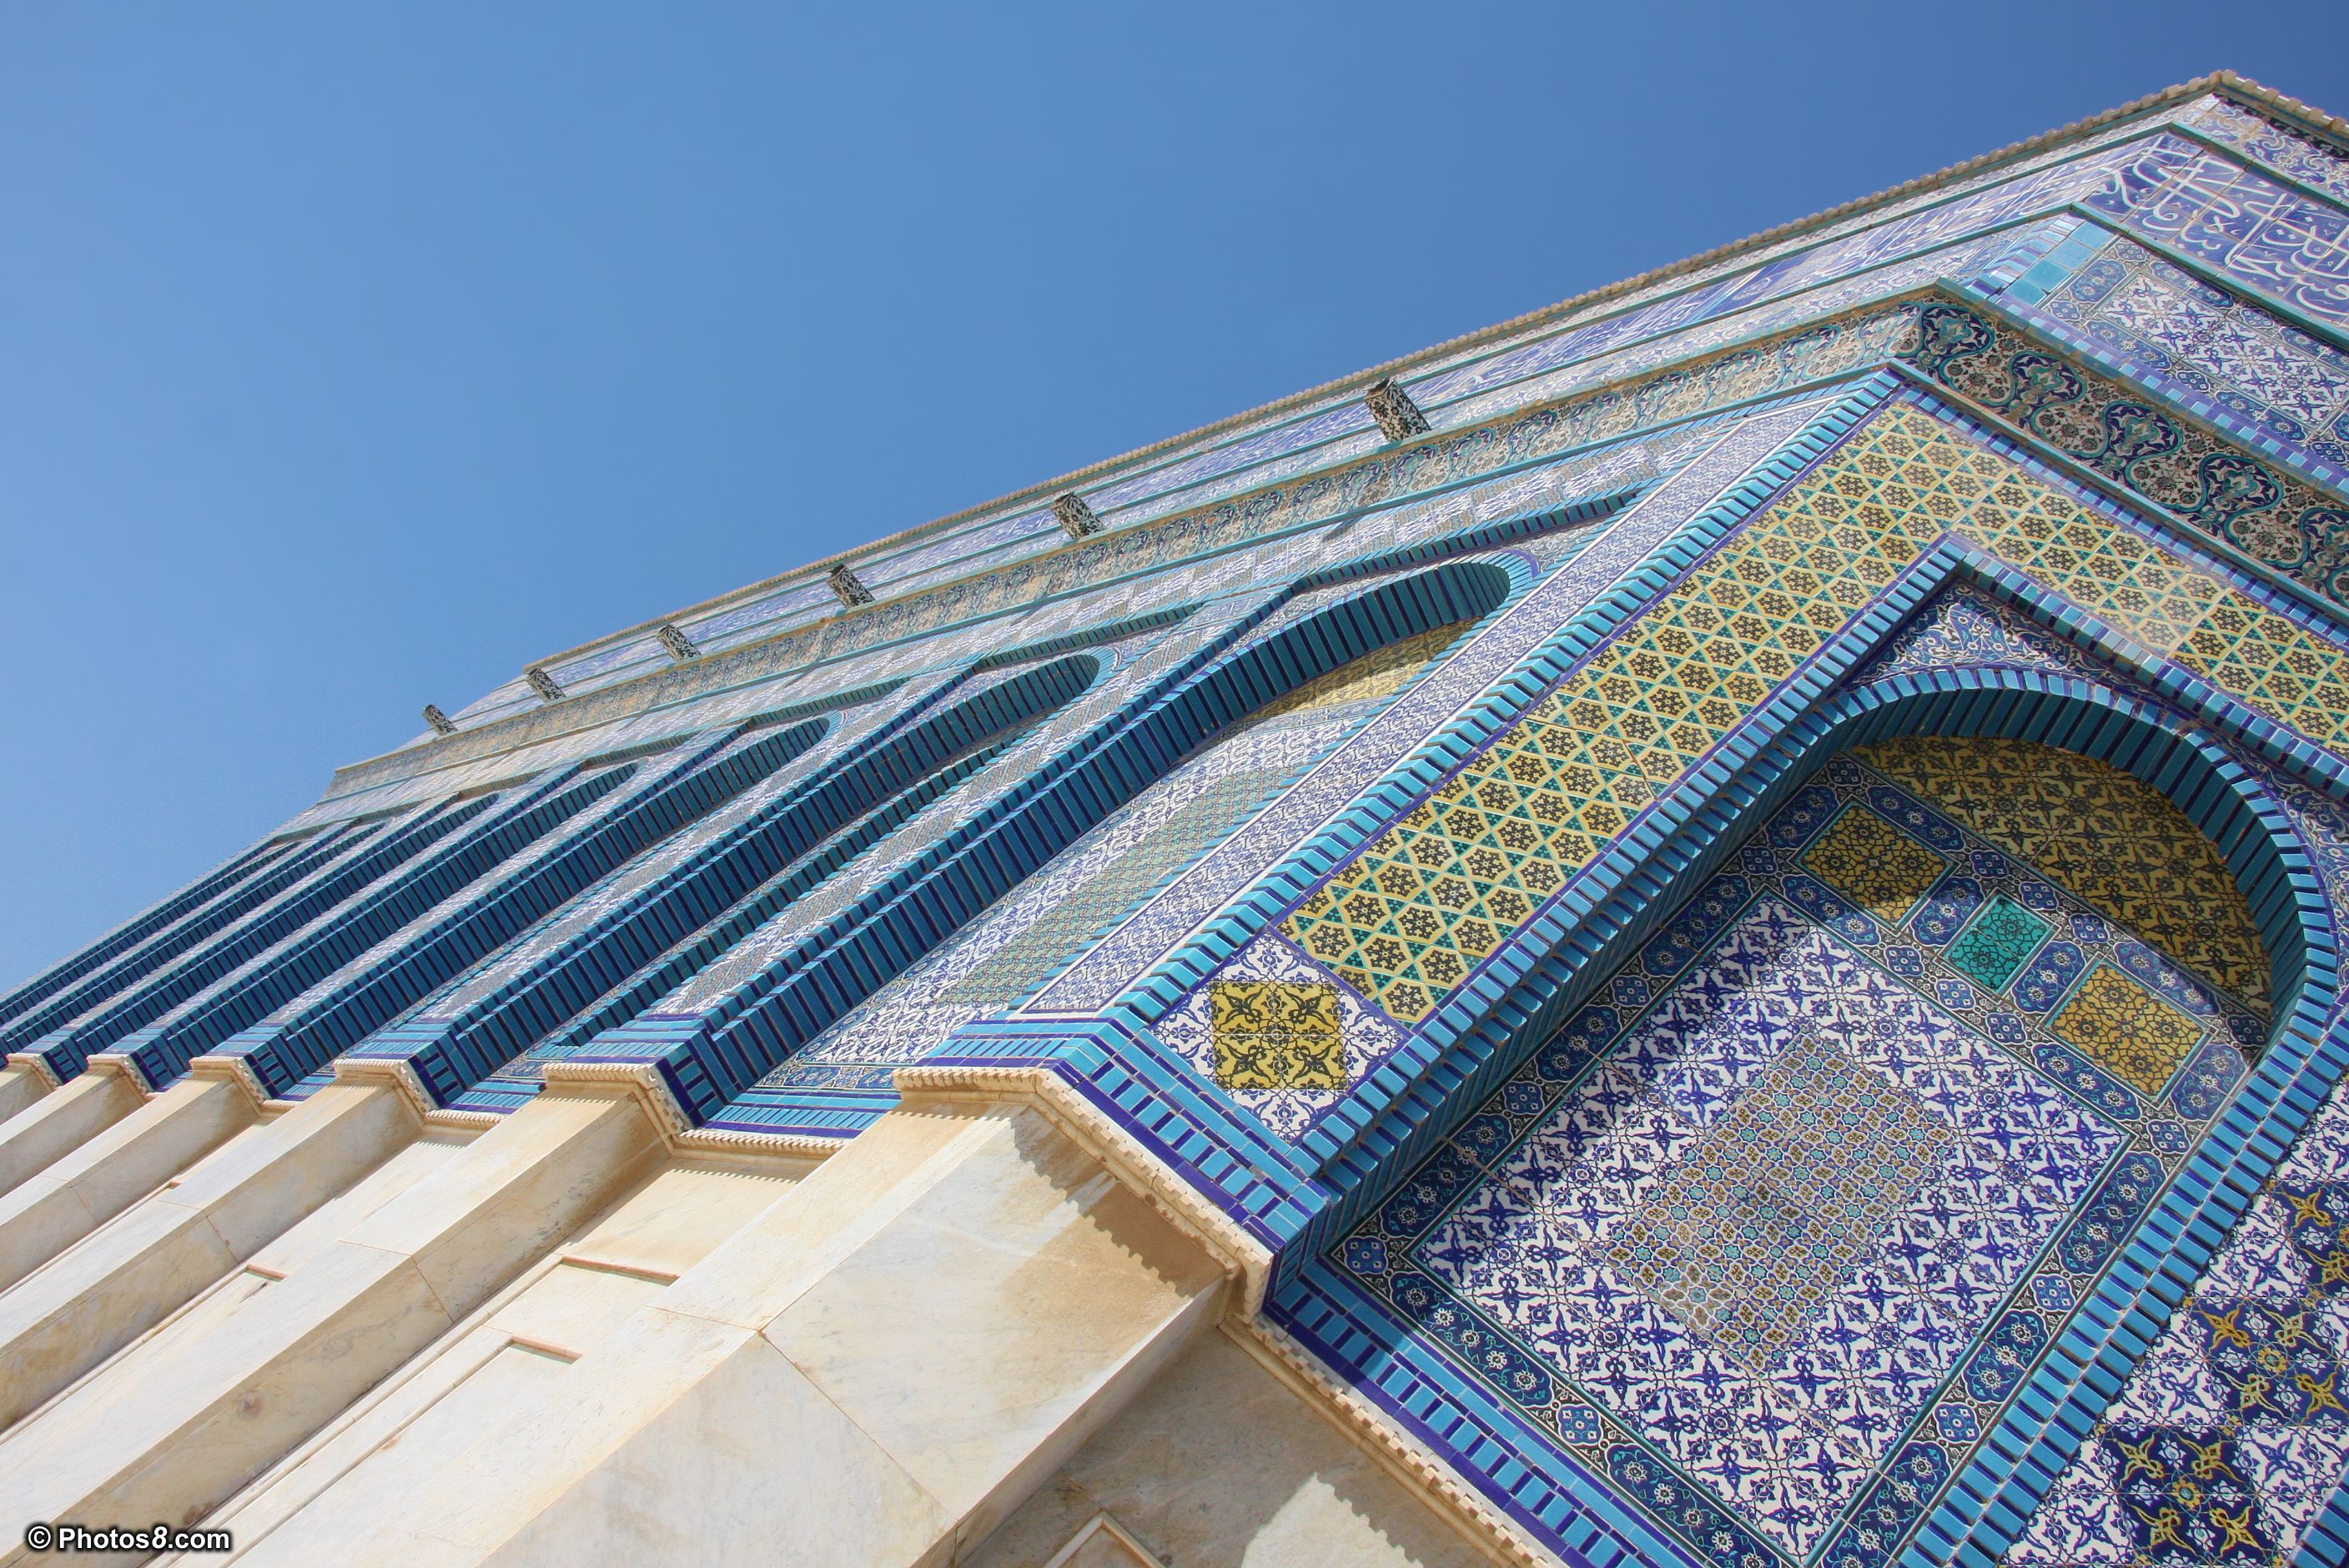 Islamic Architecture Walls of Dome of the Rock Mosque wallpaper